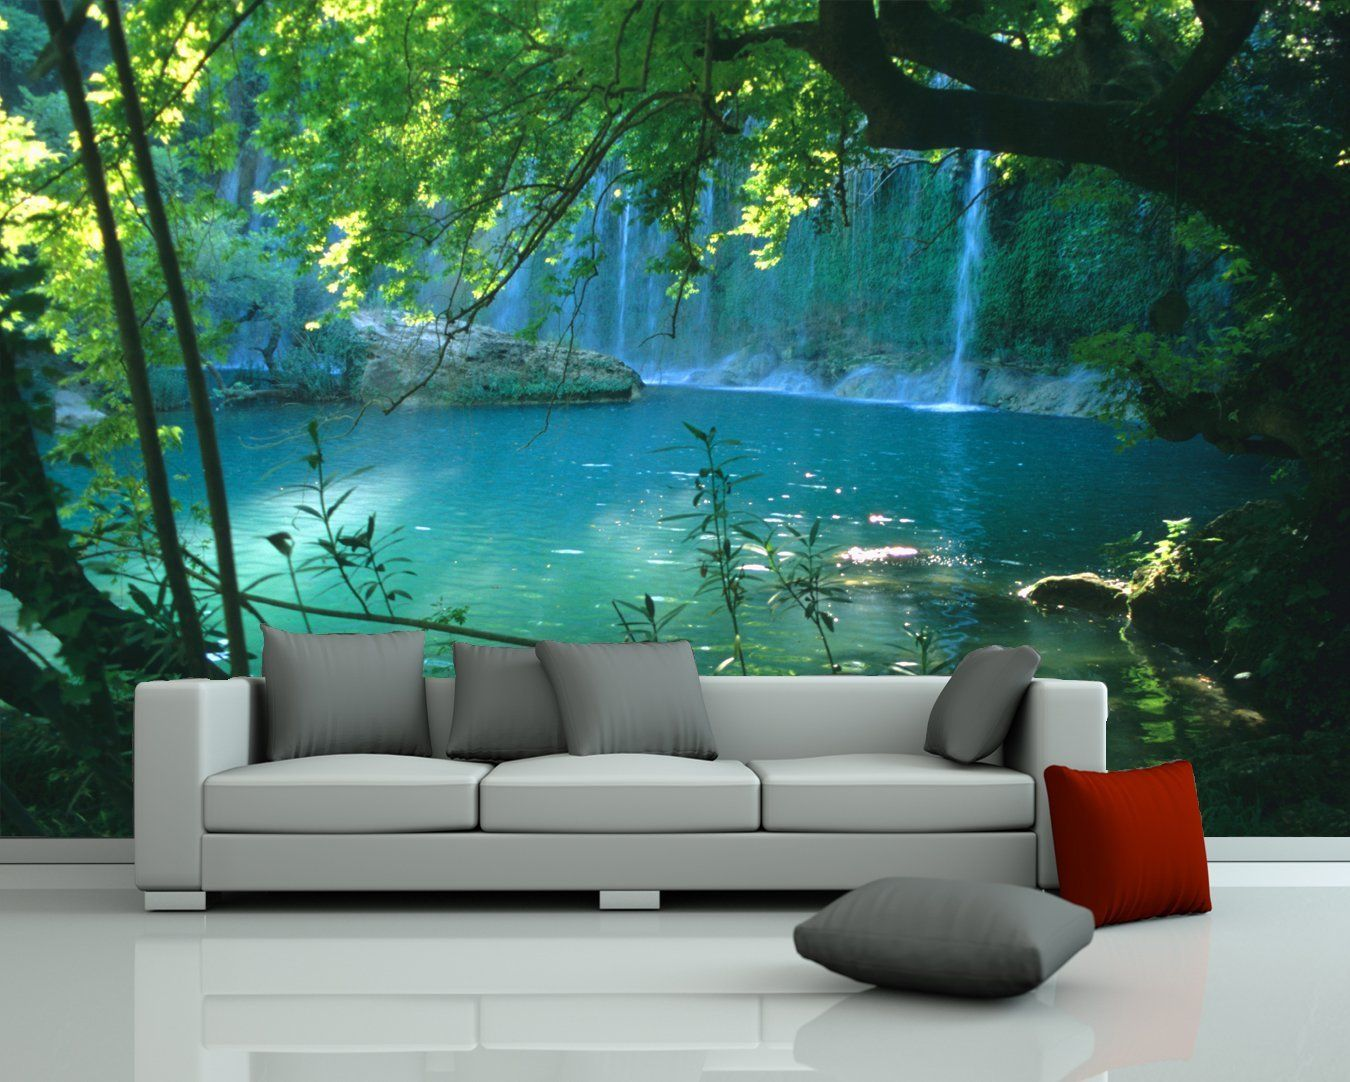 Bildtapeten Schlafzimmer Bilderdepot24 Fototapete Photo Wallpaper Mural Quotwaterfall